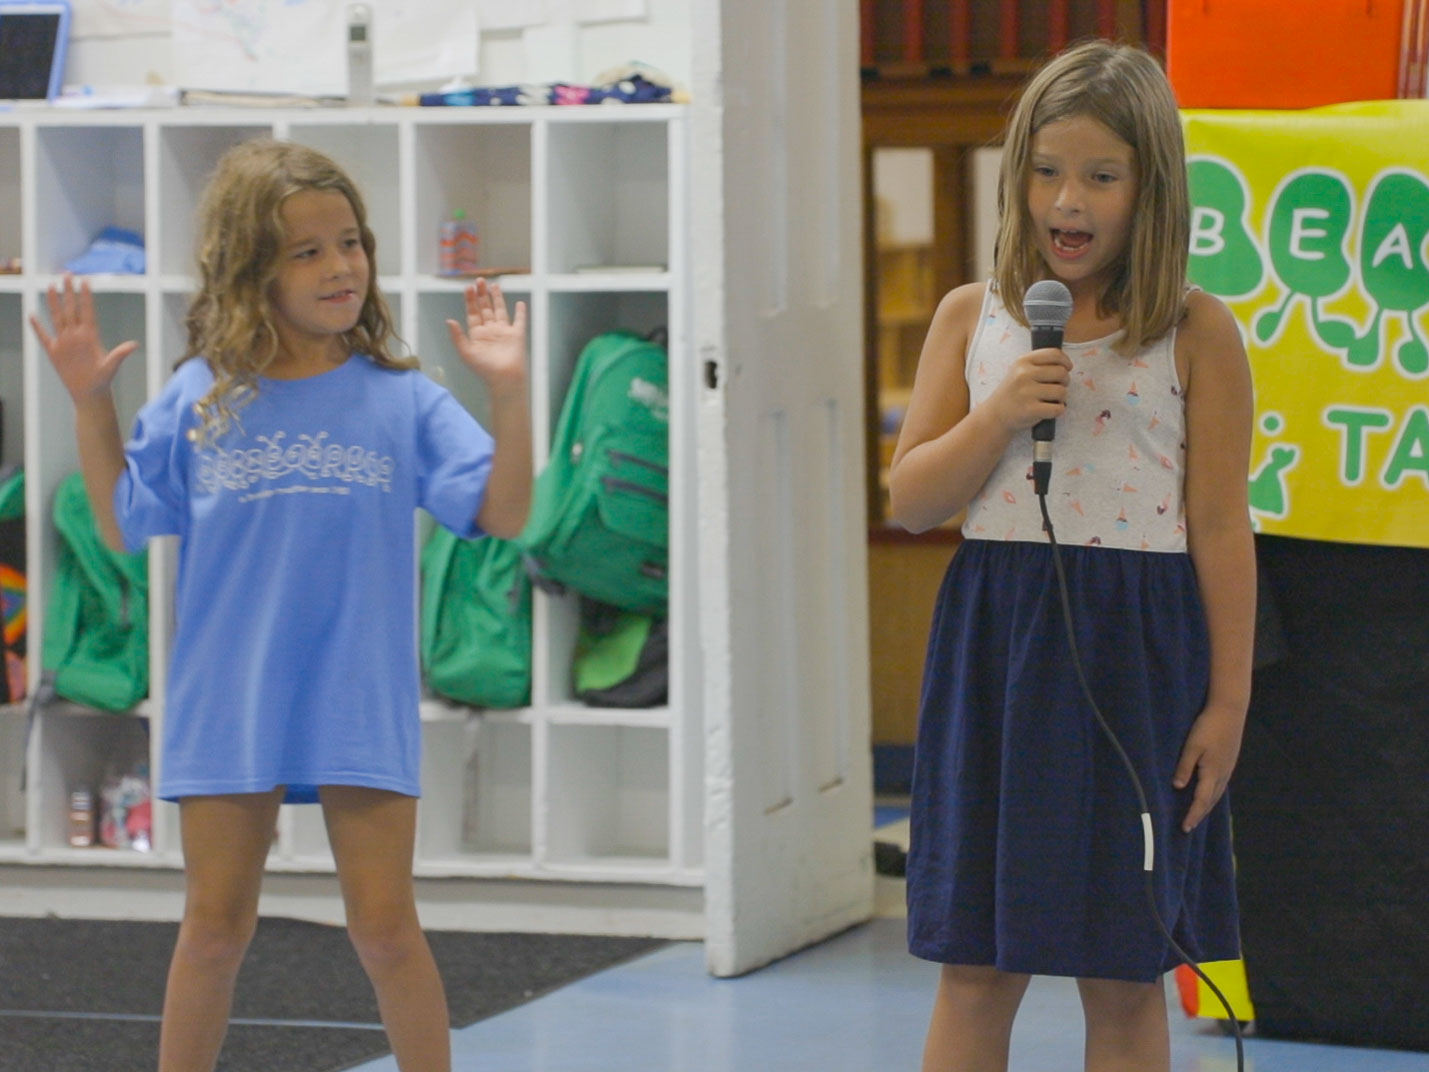 We've Got Talent - One of the most exciting activities at camp is our weekly talent show, and at Beansprouts day camp, we have plenty of them! Show off your latest gymnastics routine, sing a song with friends, or tell us a few of your favorite jokes!